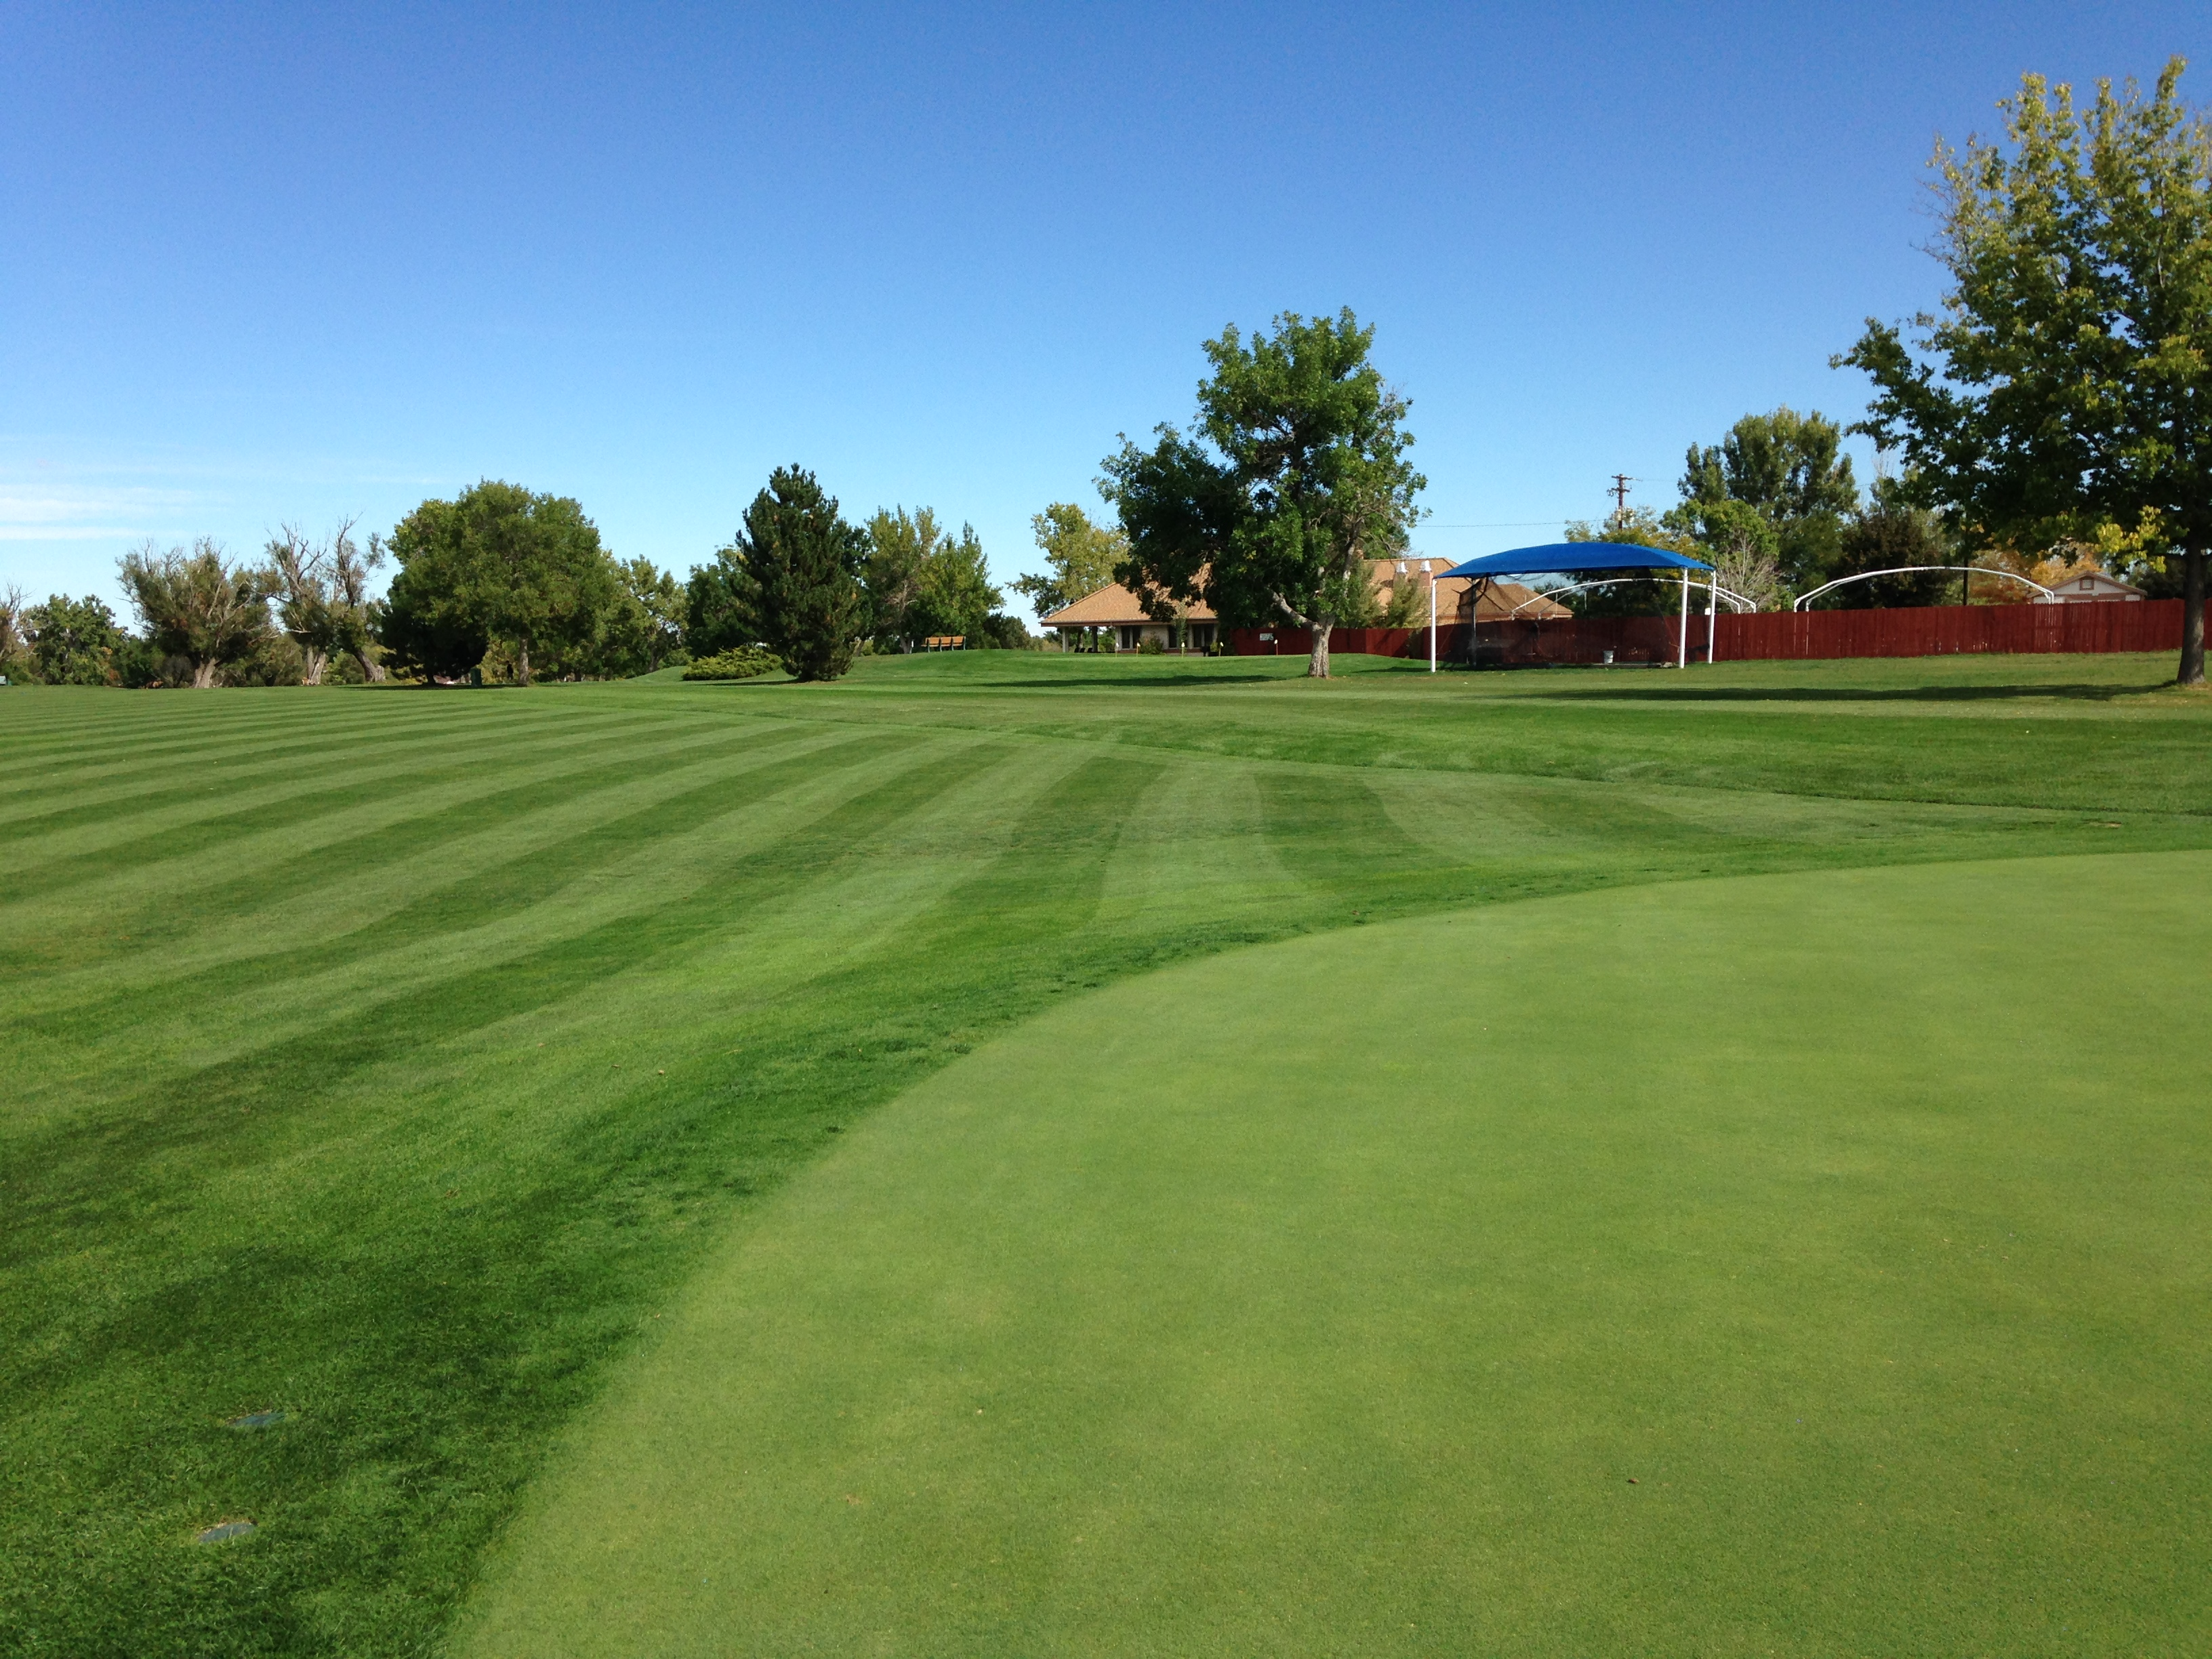 Overview of golf course named Southglenn Country Club